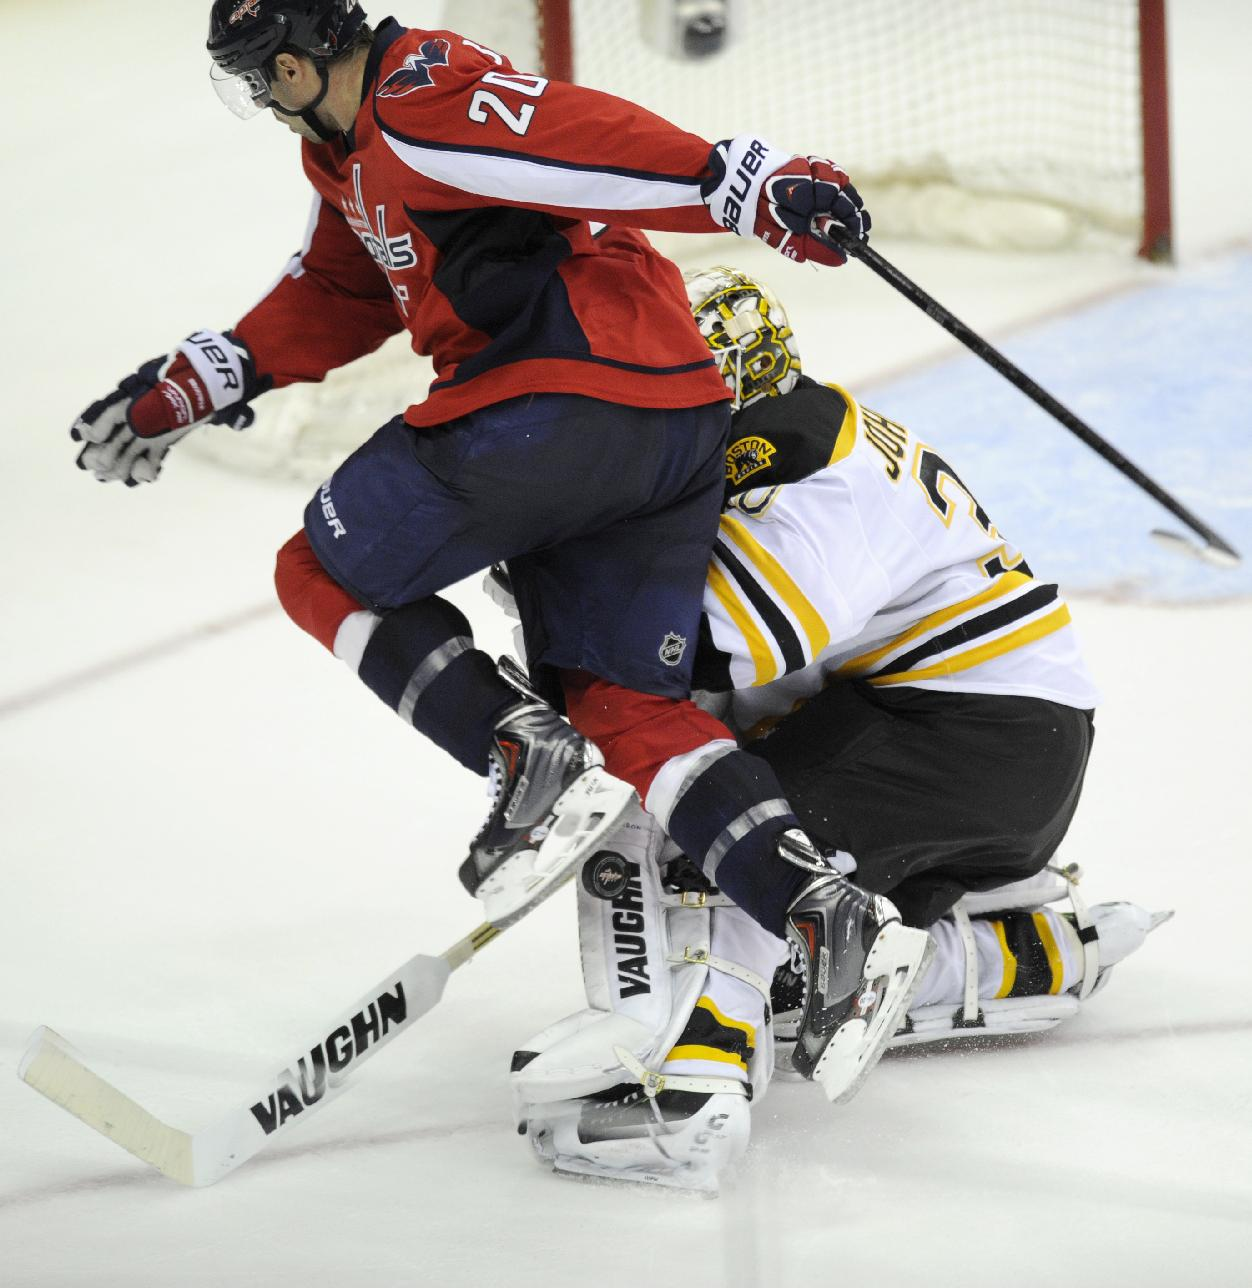 Washington Capitals right wing Troy Brouwer (20) saktes into Boston Bruins goalie Chad Johnson (30) as he went for the puck during the third period of an NHL hockey game, Saturday, March 29, 2014, in Washington. The Bruins won 4-2